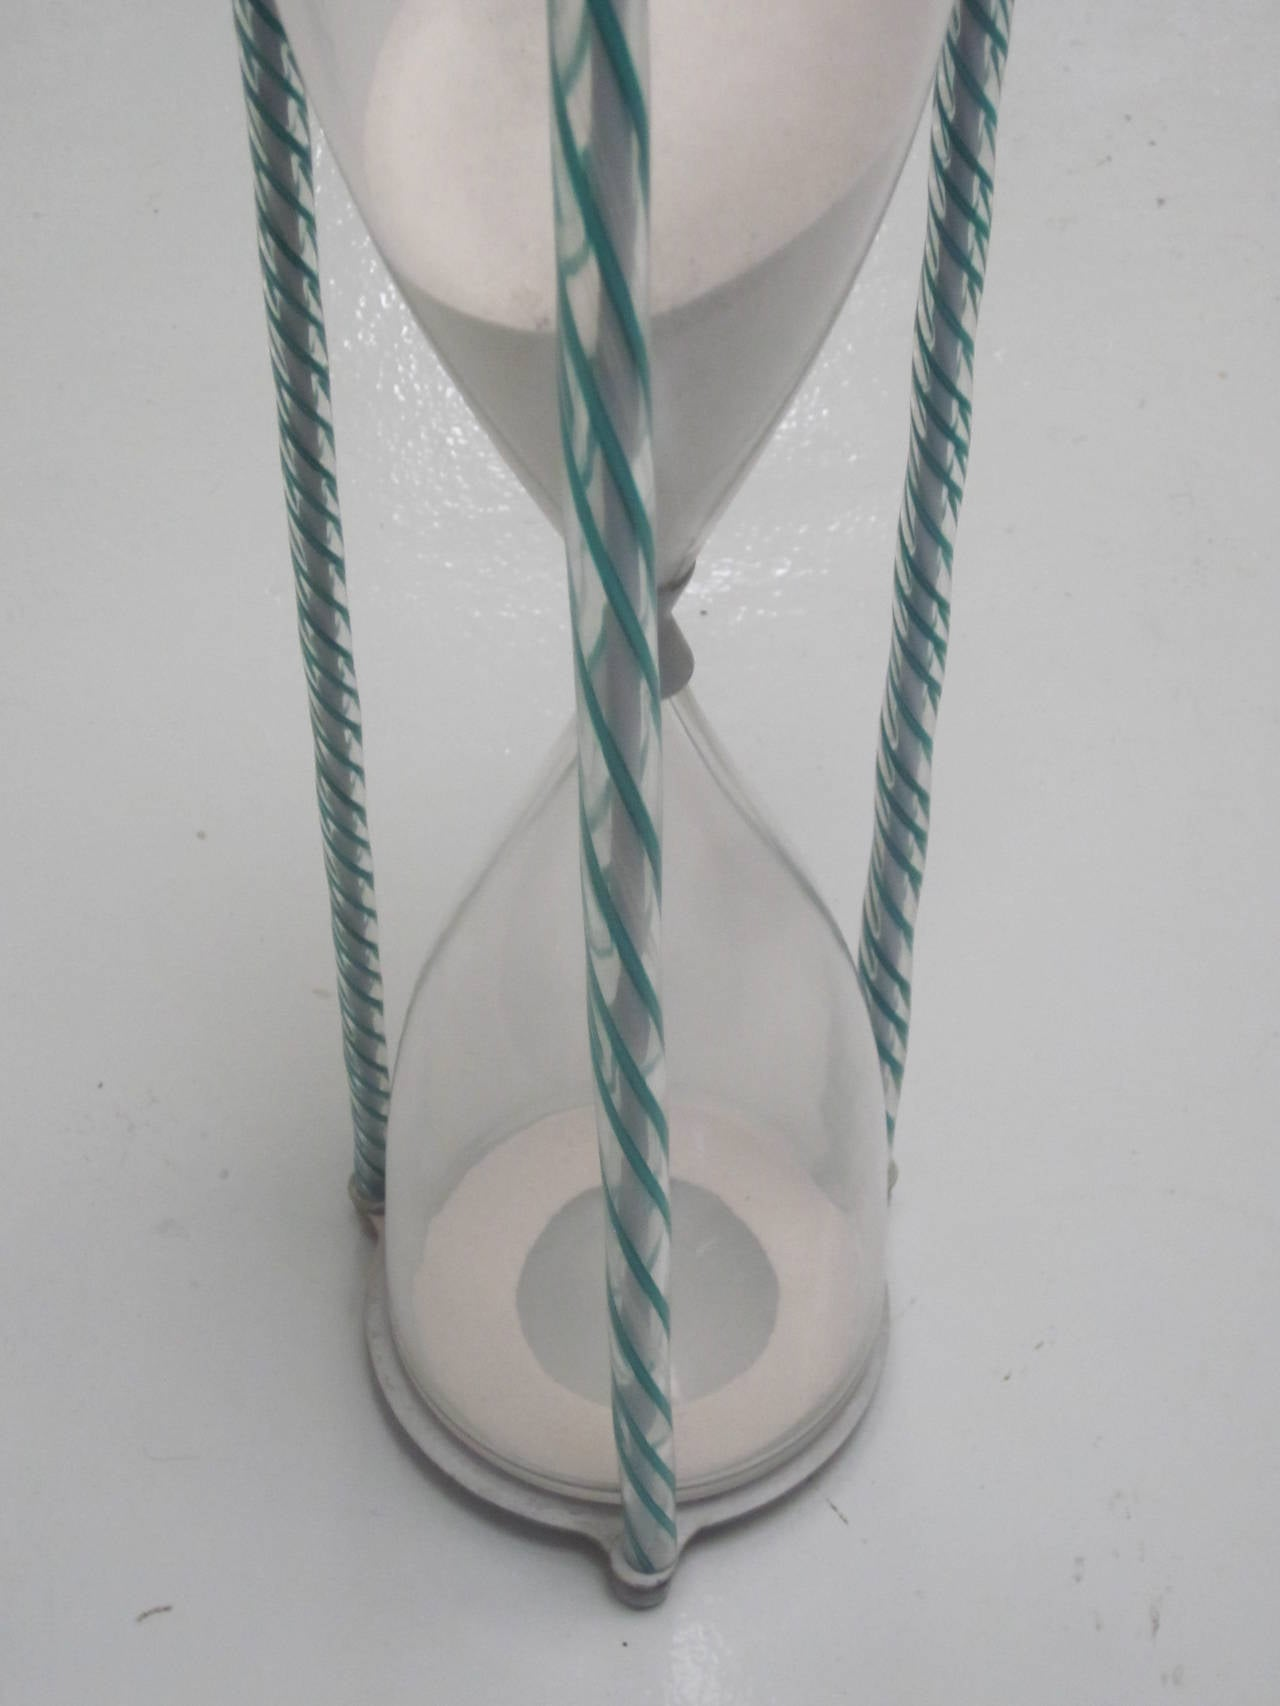 Mid-Century Modern Handblown Murano Glass Hourglass by Paolo Venini For Sale